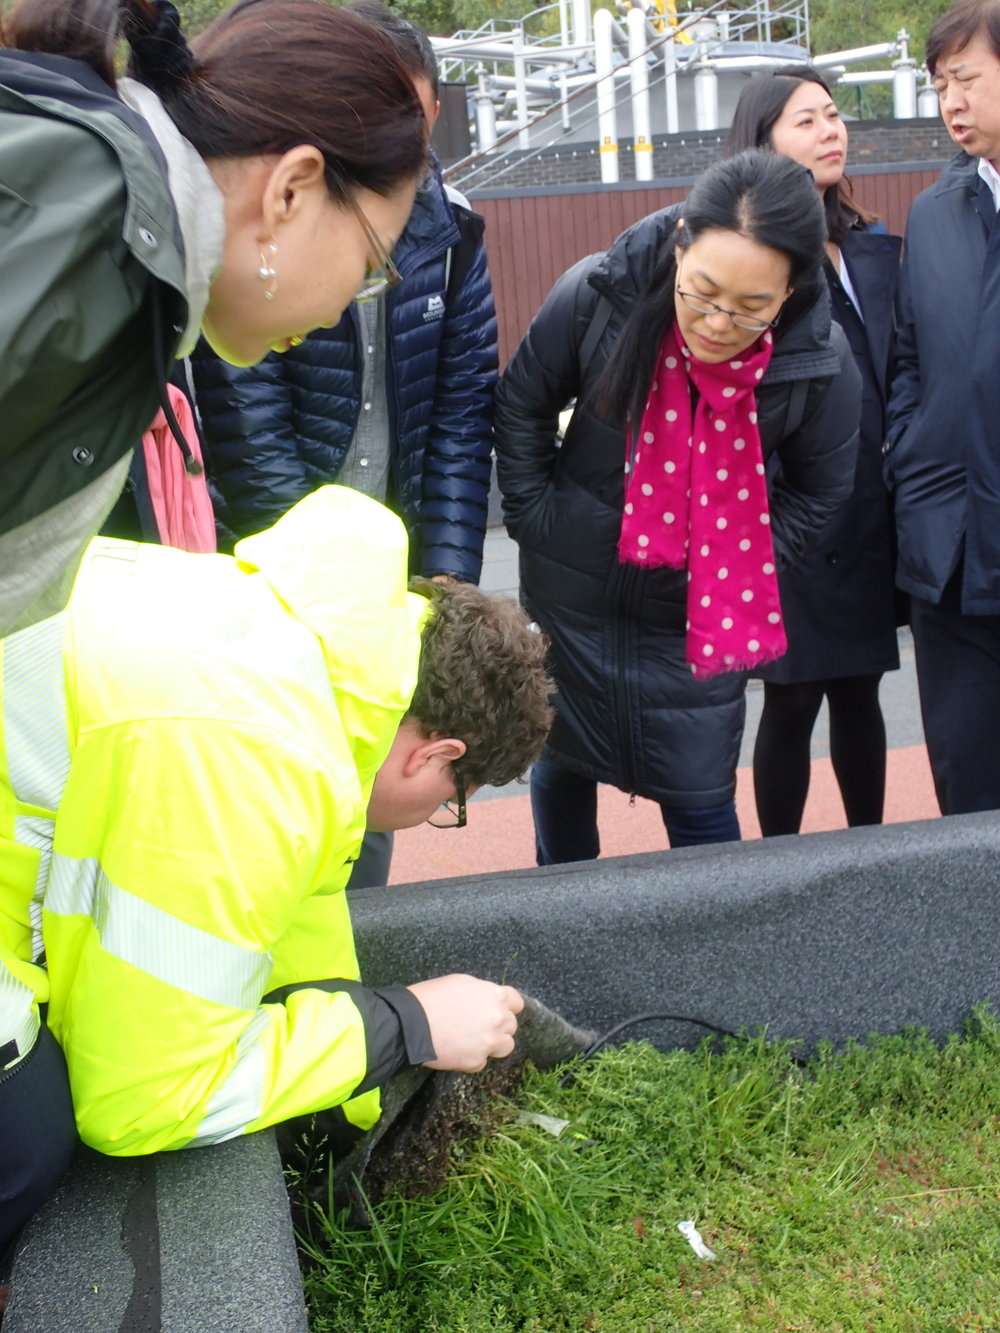 The Chinese Delegation is showing interest in the different layers of the bluegreen roof